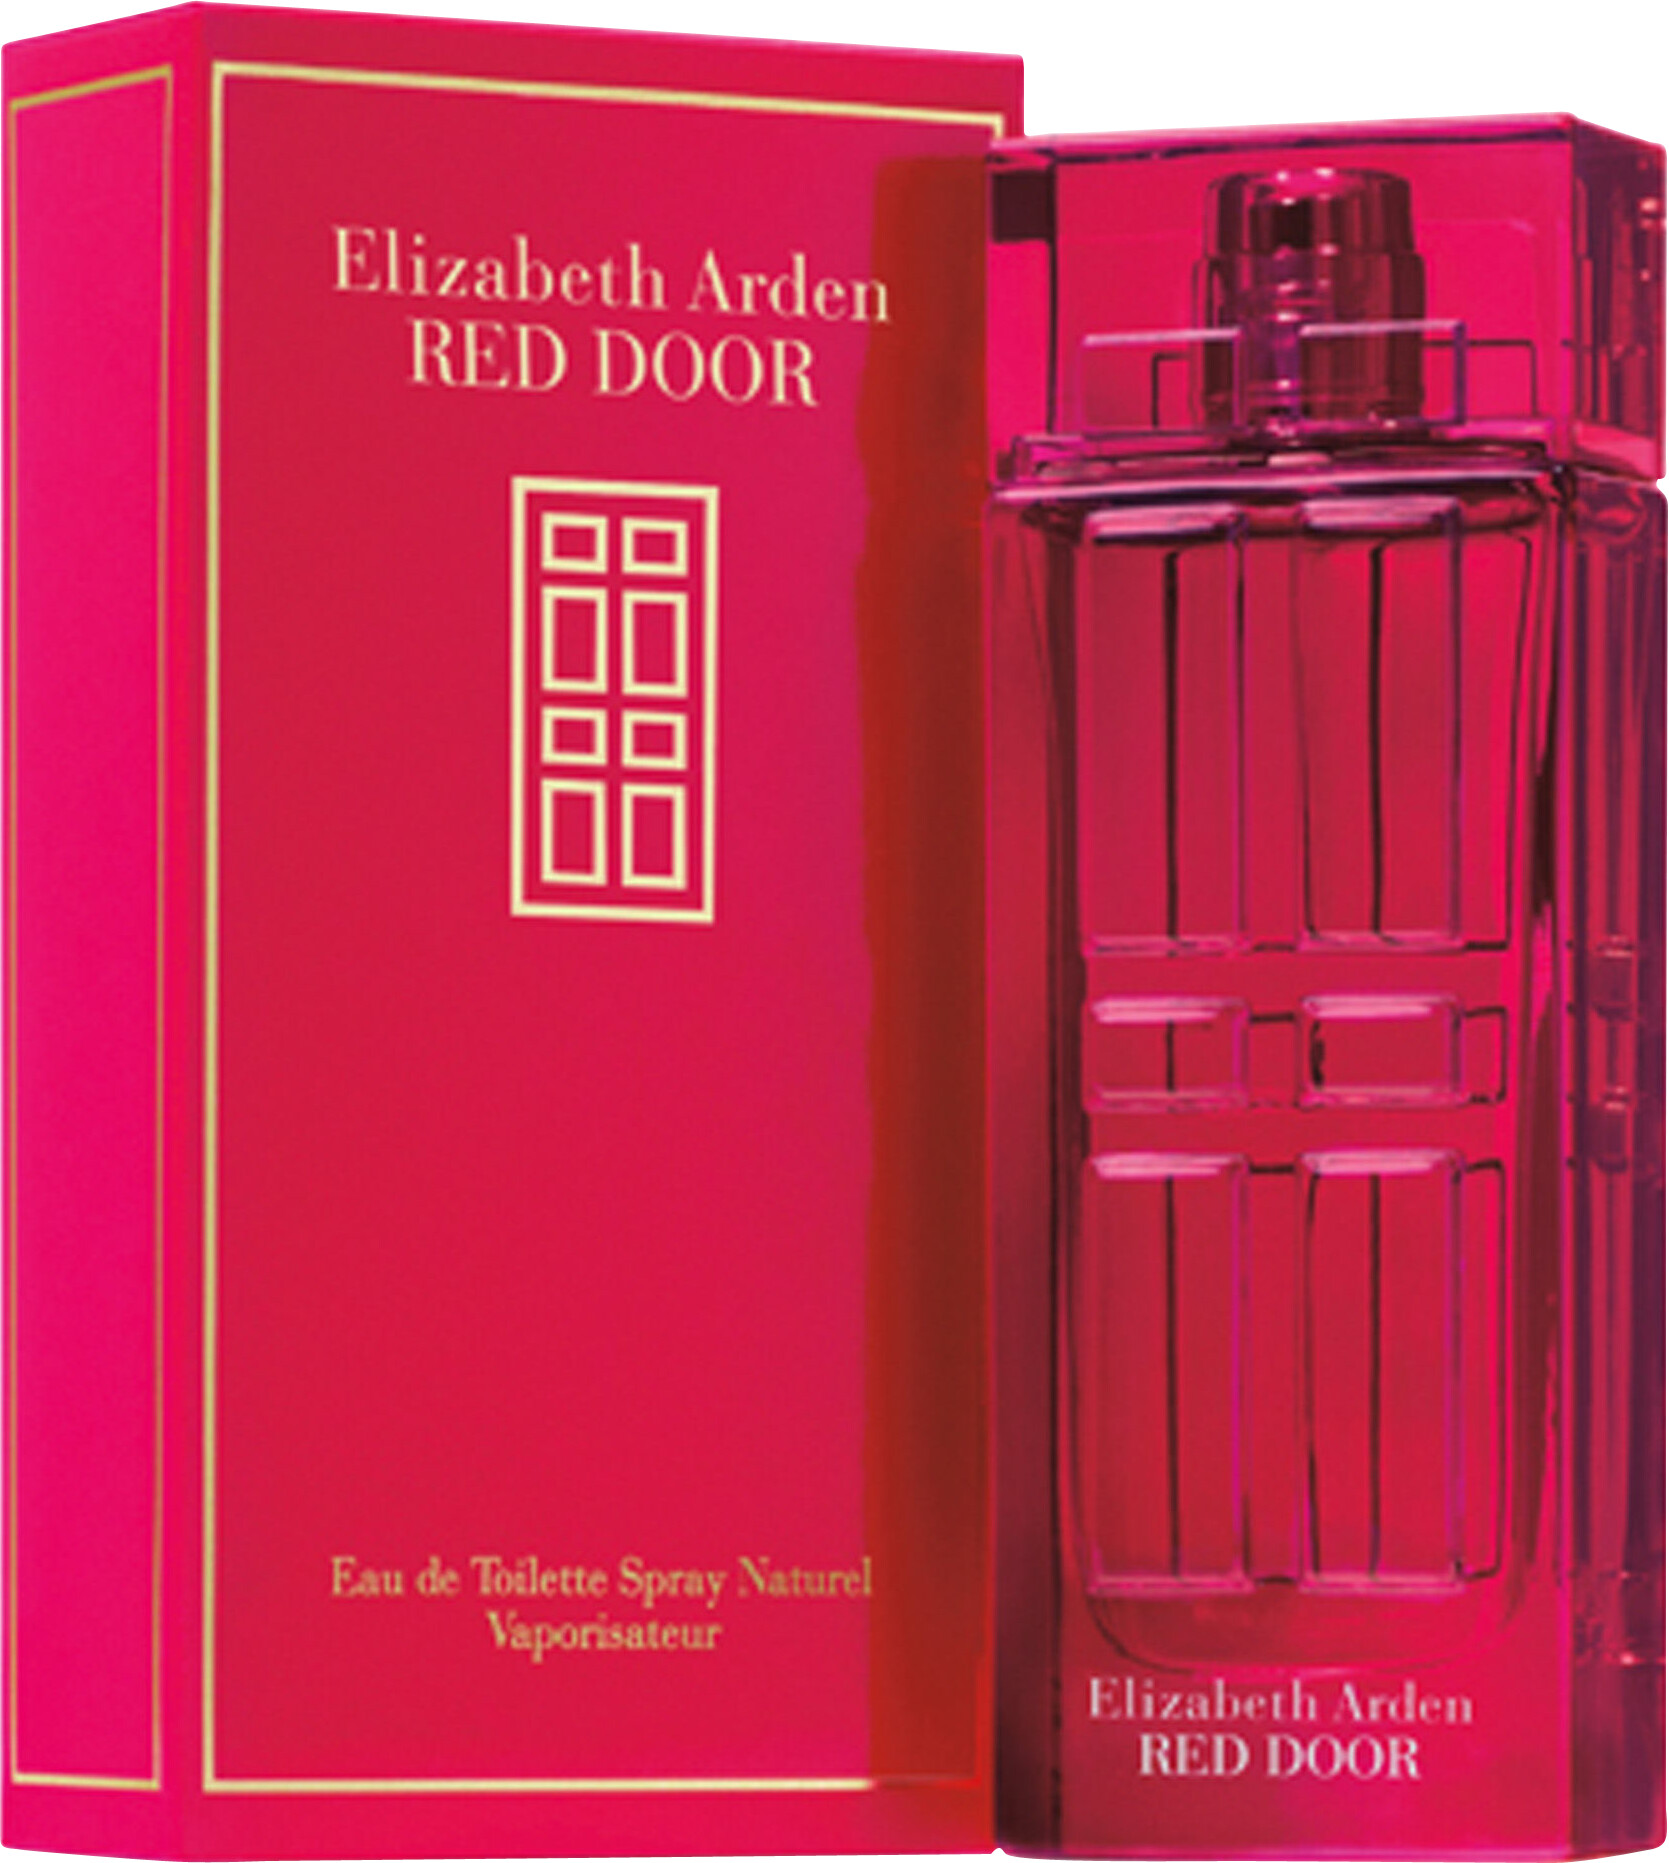 box spray door eau red elizabeth arden de aura edt toilette with